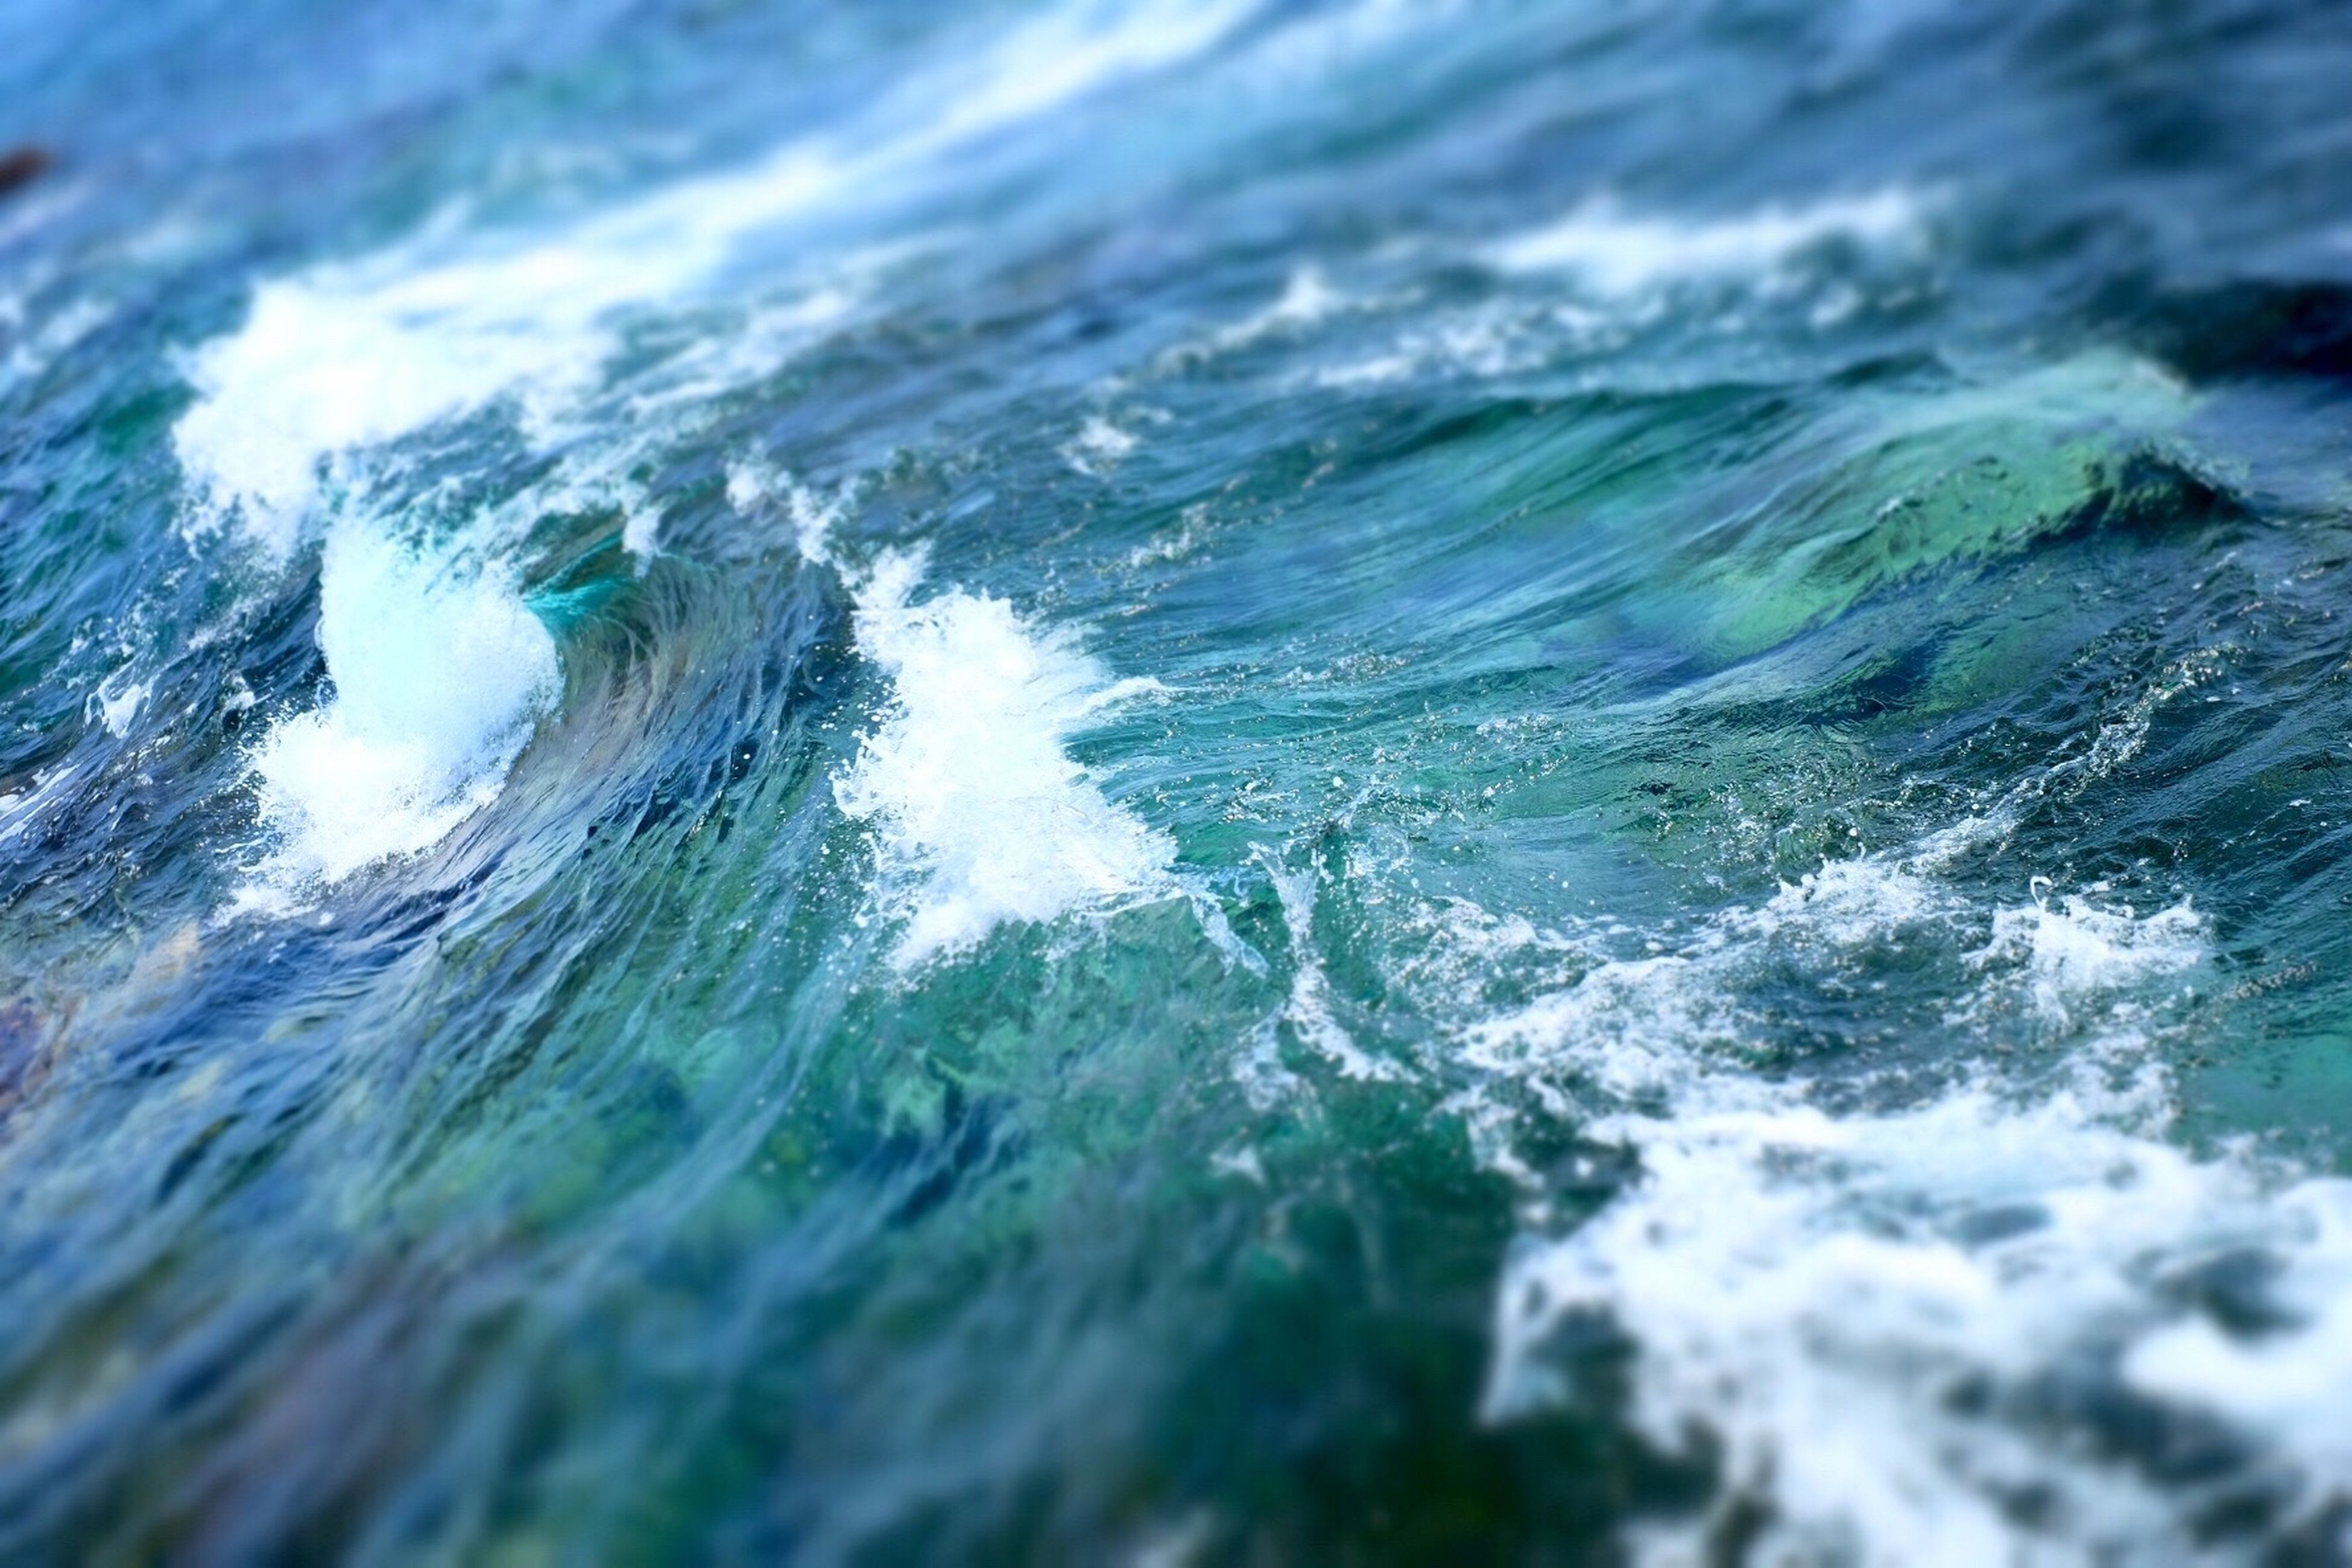 water, sea, waterfront, beauty in nature, wave, motion, nature, rippled, scenics, surf, splashing, tranquility, power in nature, tranquil scene, day, outdoors, high angle view, idyllic, no people, close-up